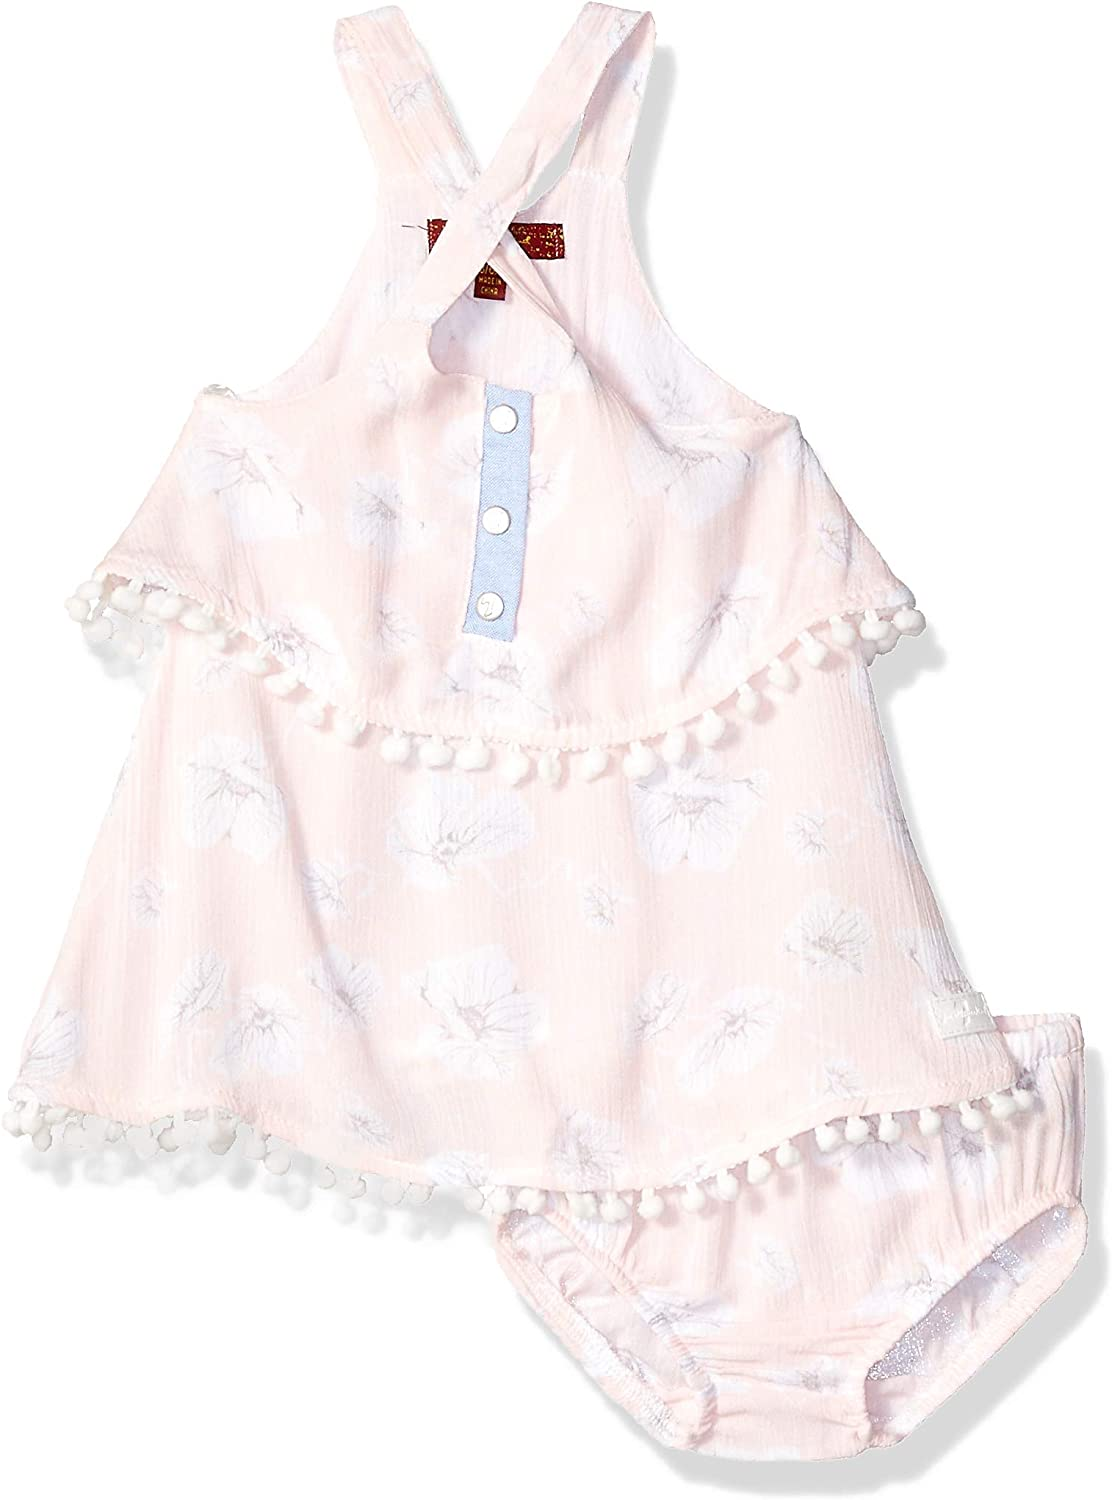 Free shipping on posting reviews 7 For All Mankind Baby Manufacturer OFFicial shop Girls with Dress Crinkle Bloomer Tiered C